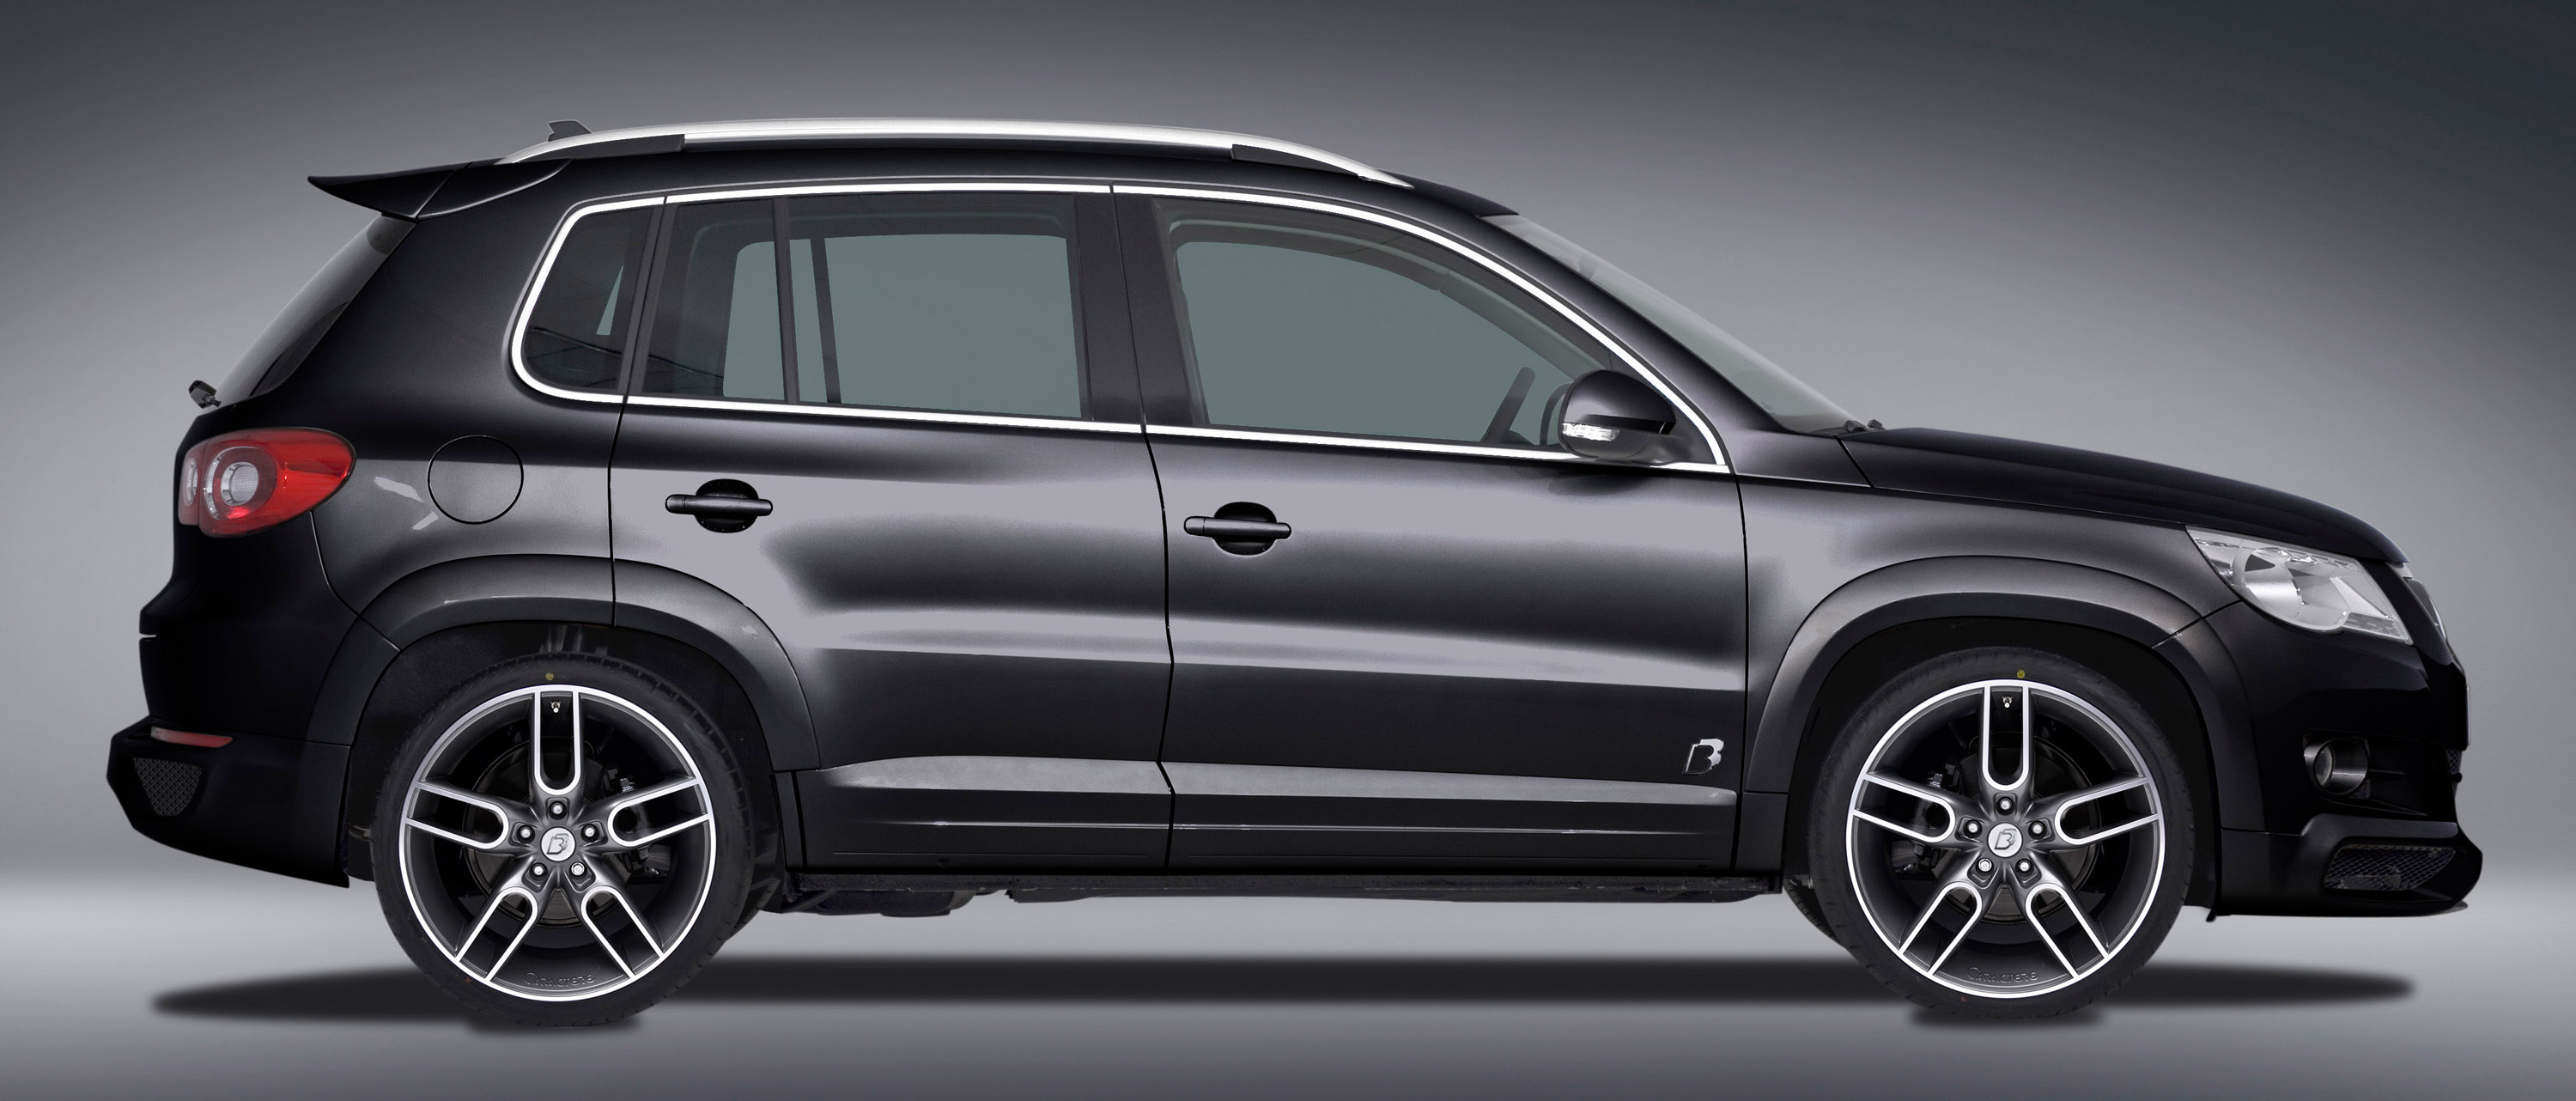 B Amp B Vw Tiguan Compact Suv Up To 300hp 420nm